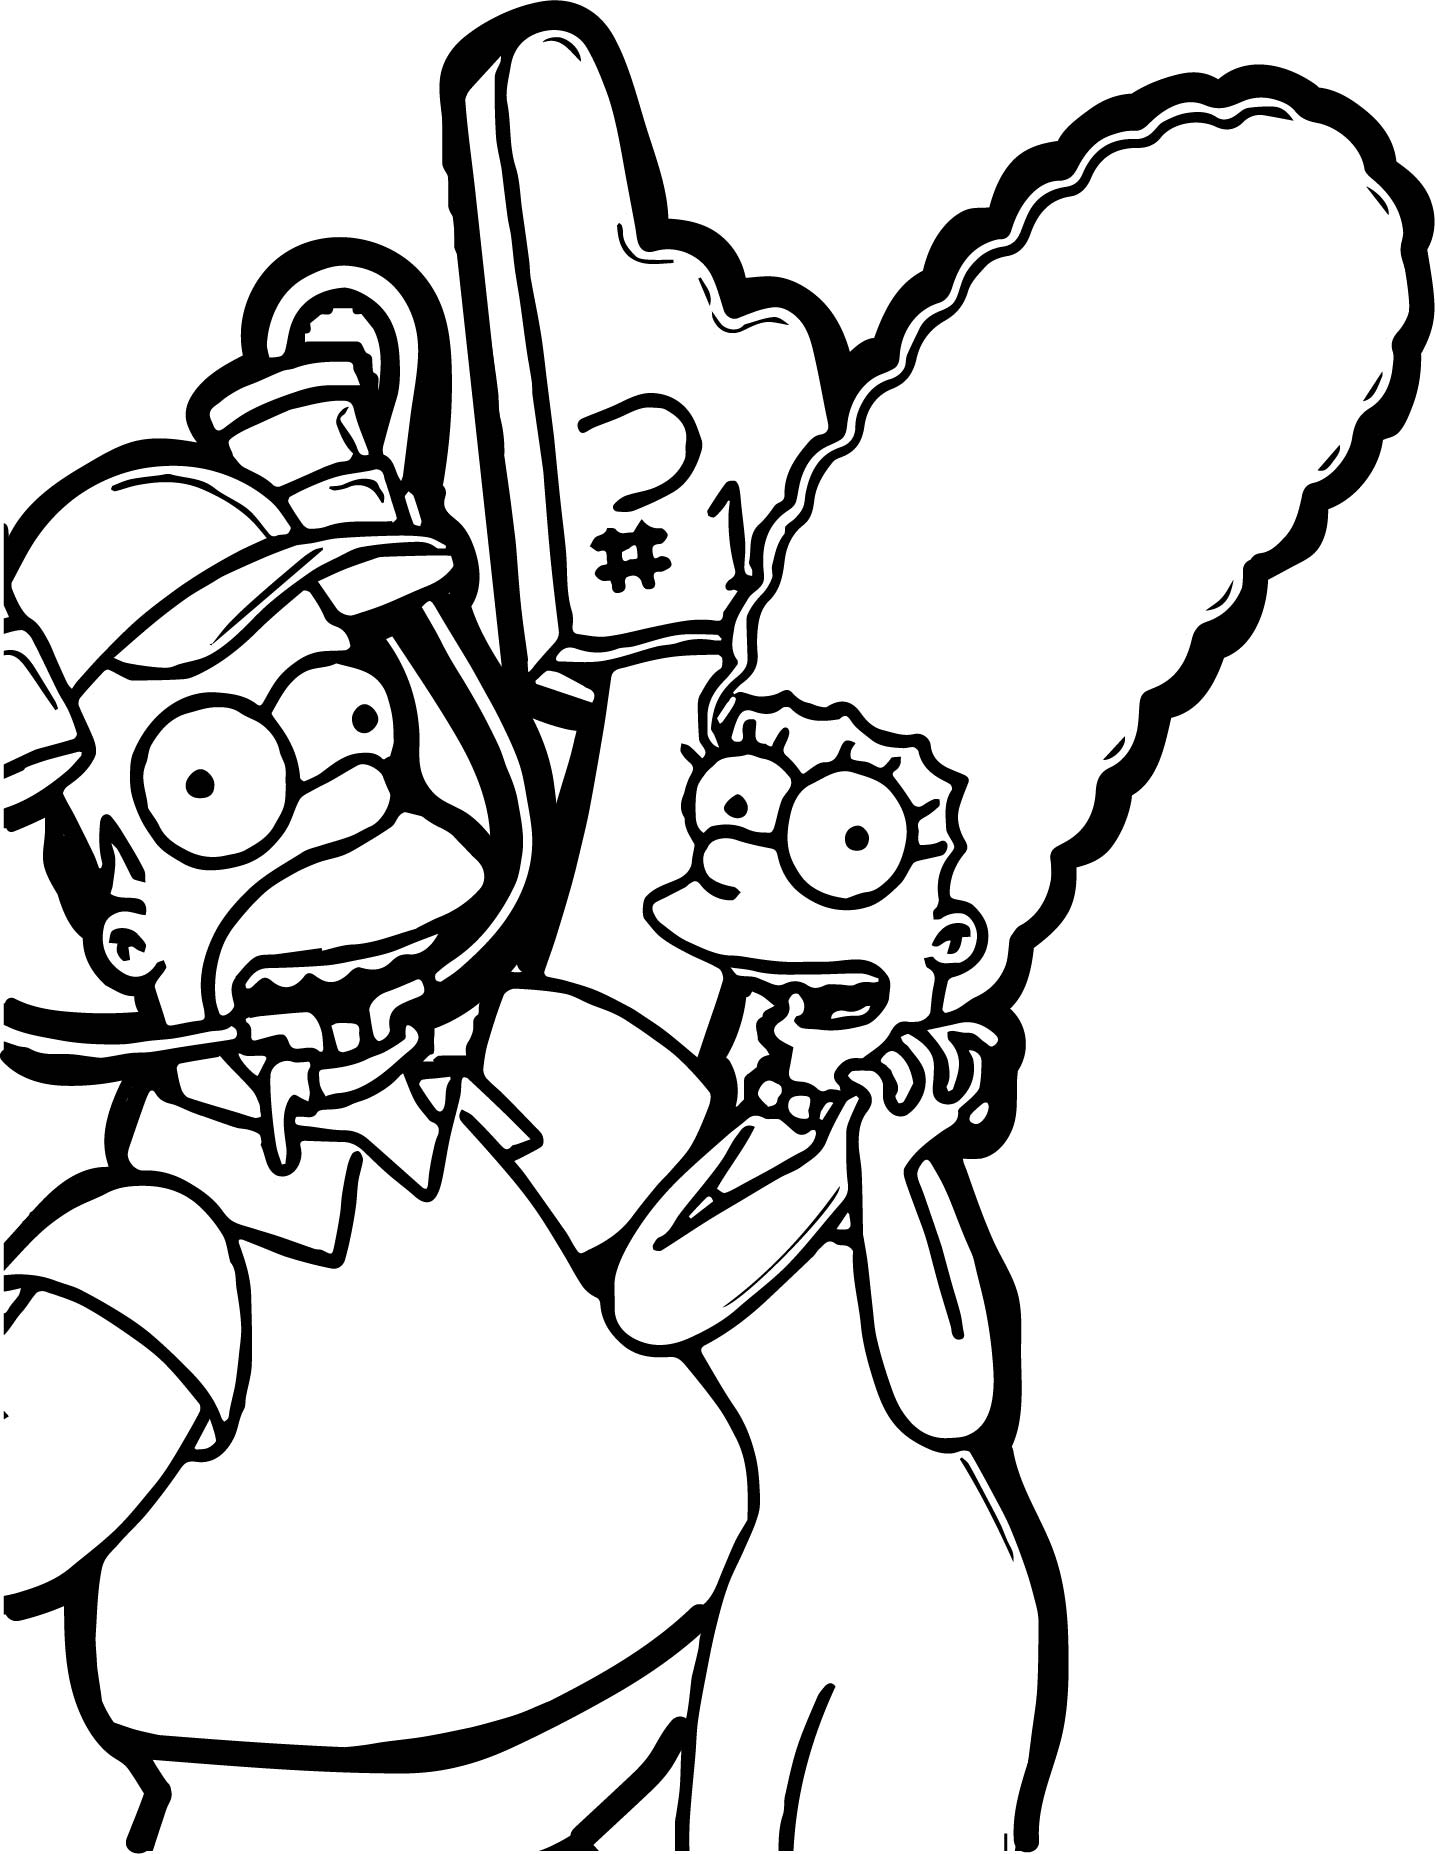 Key Art Simpsons Coloring Page